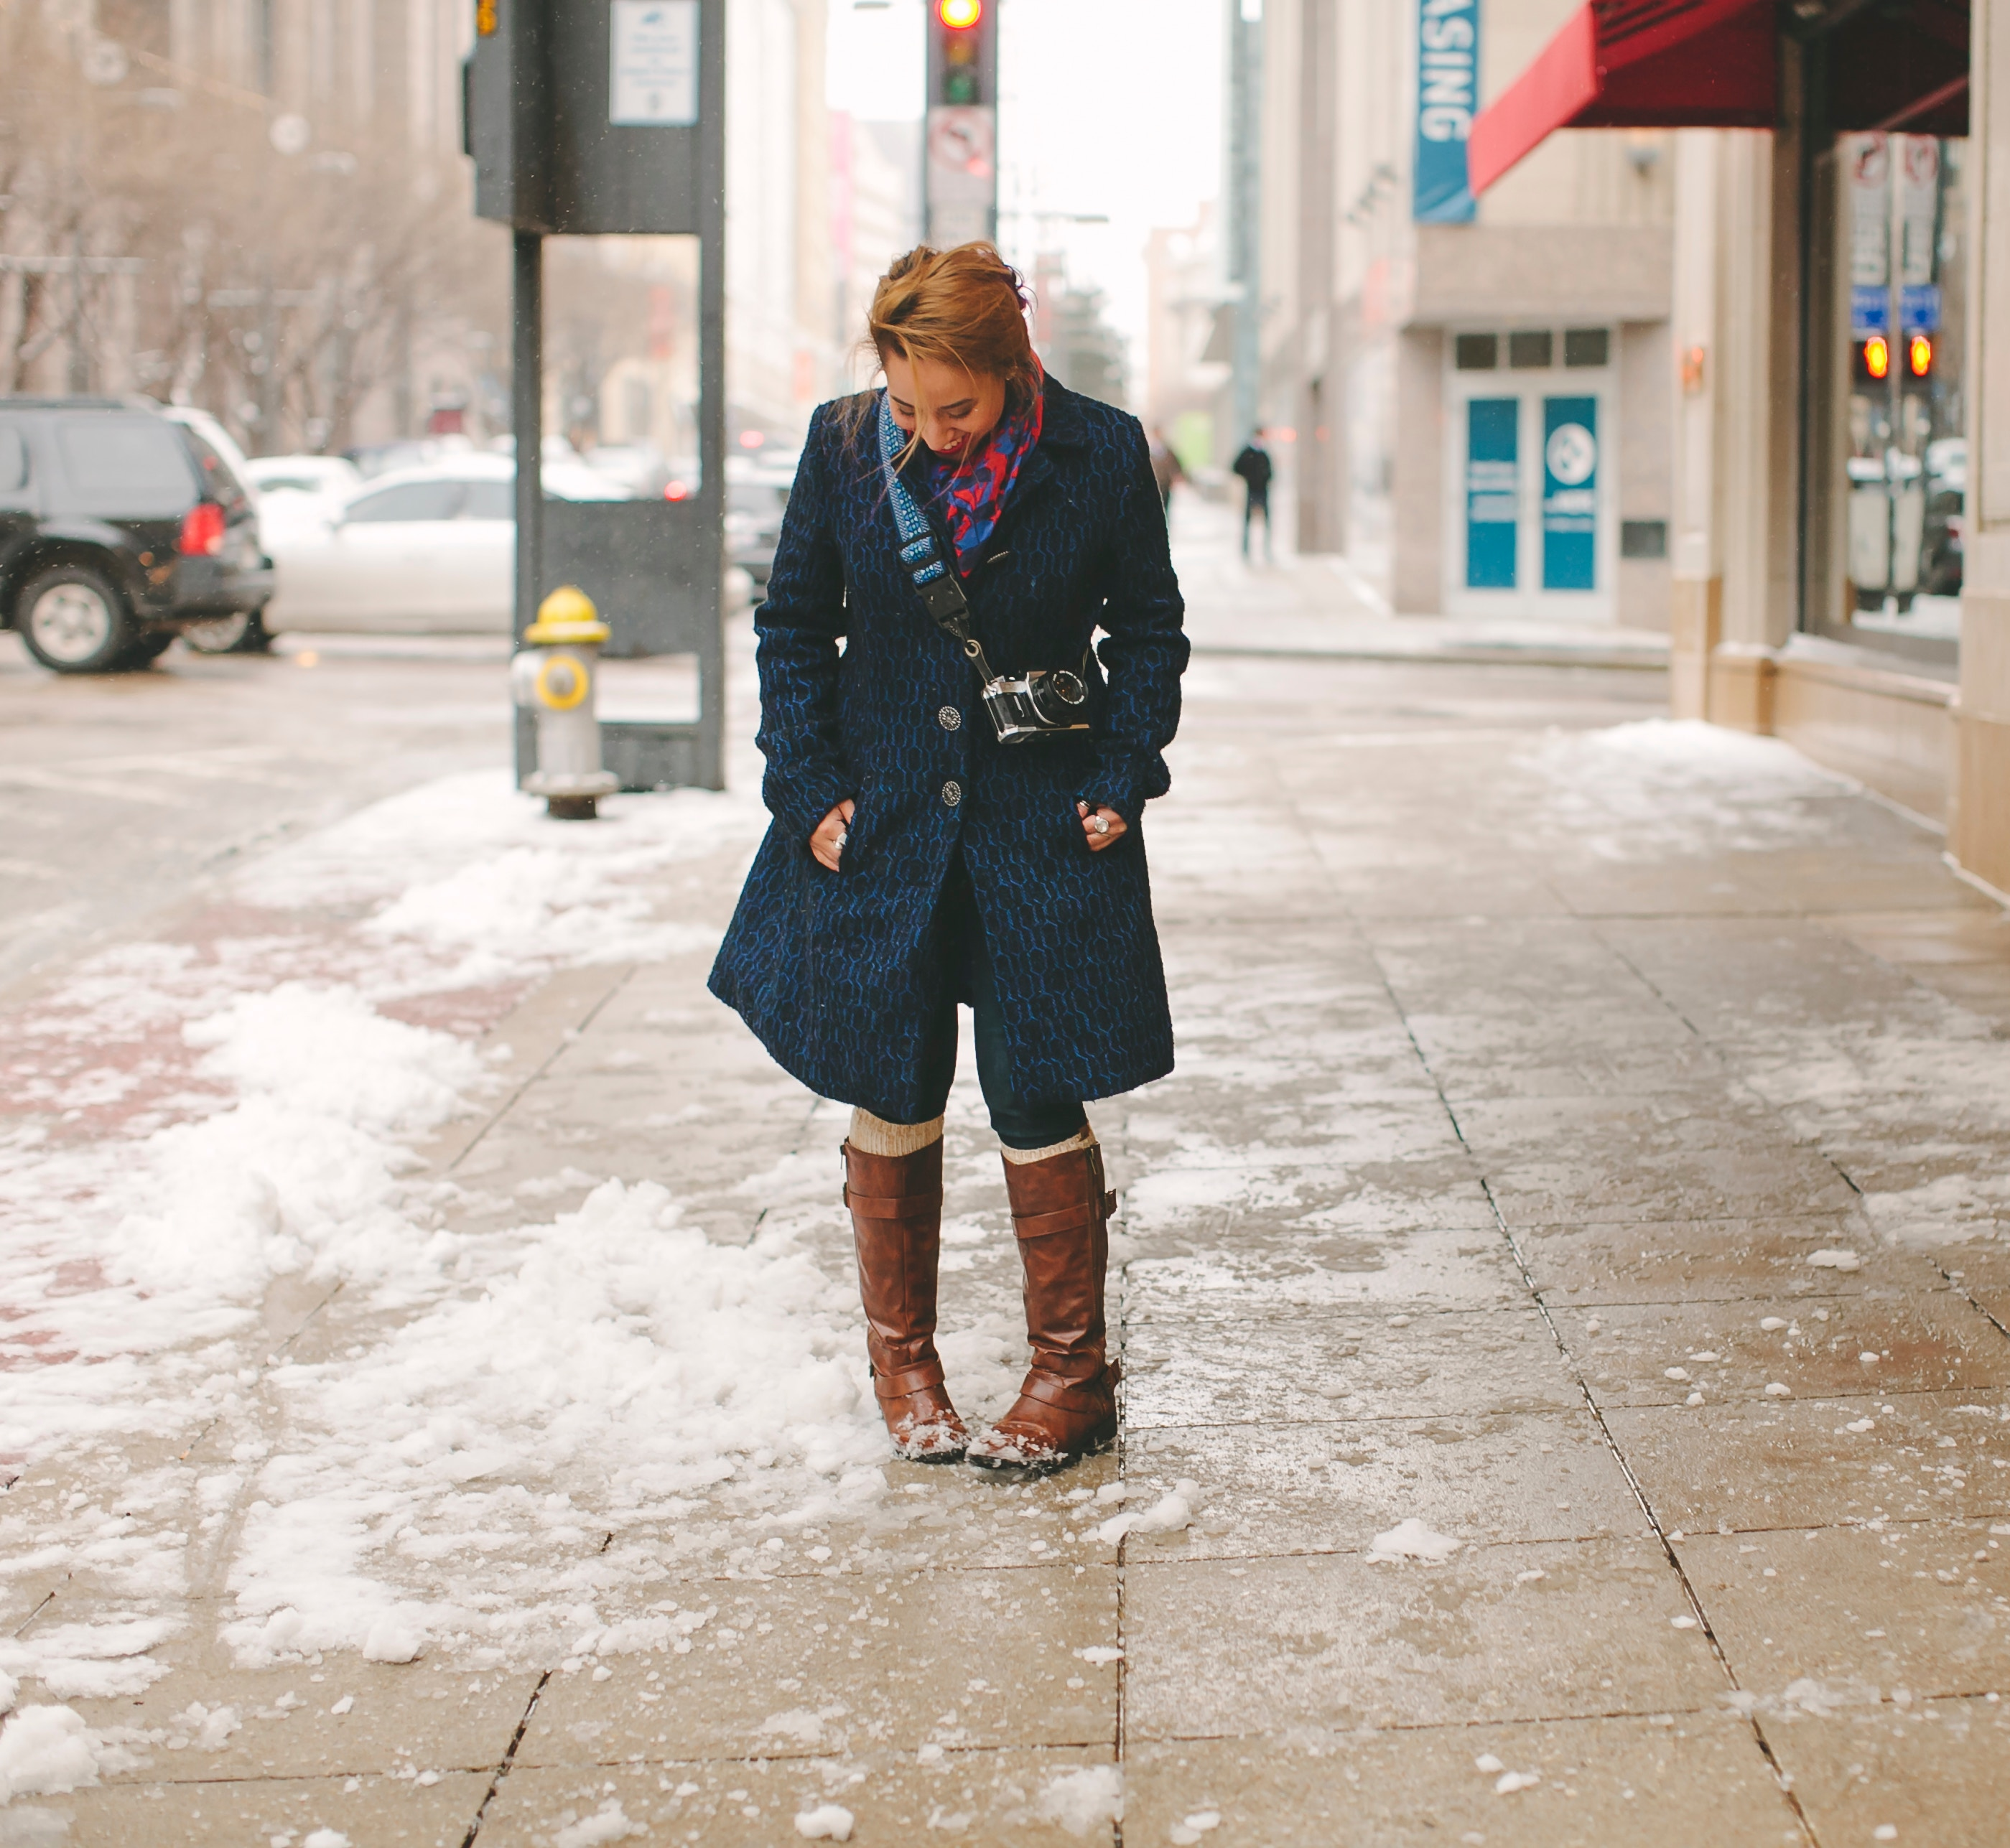 Outerwear before a winter coat this Christmas